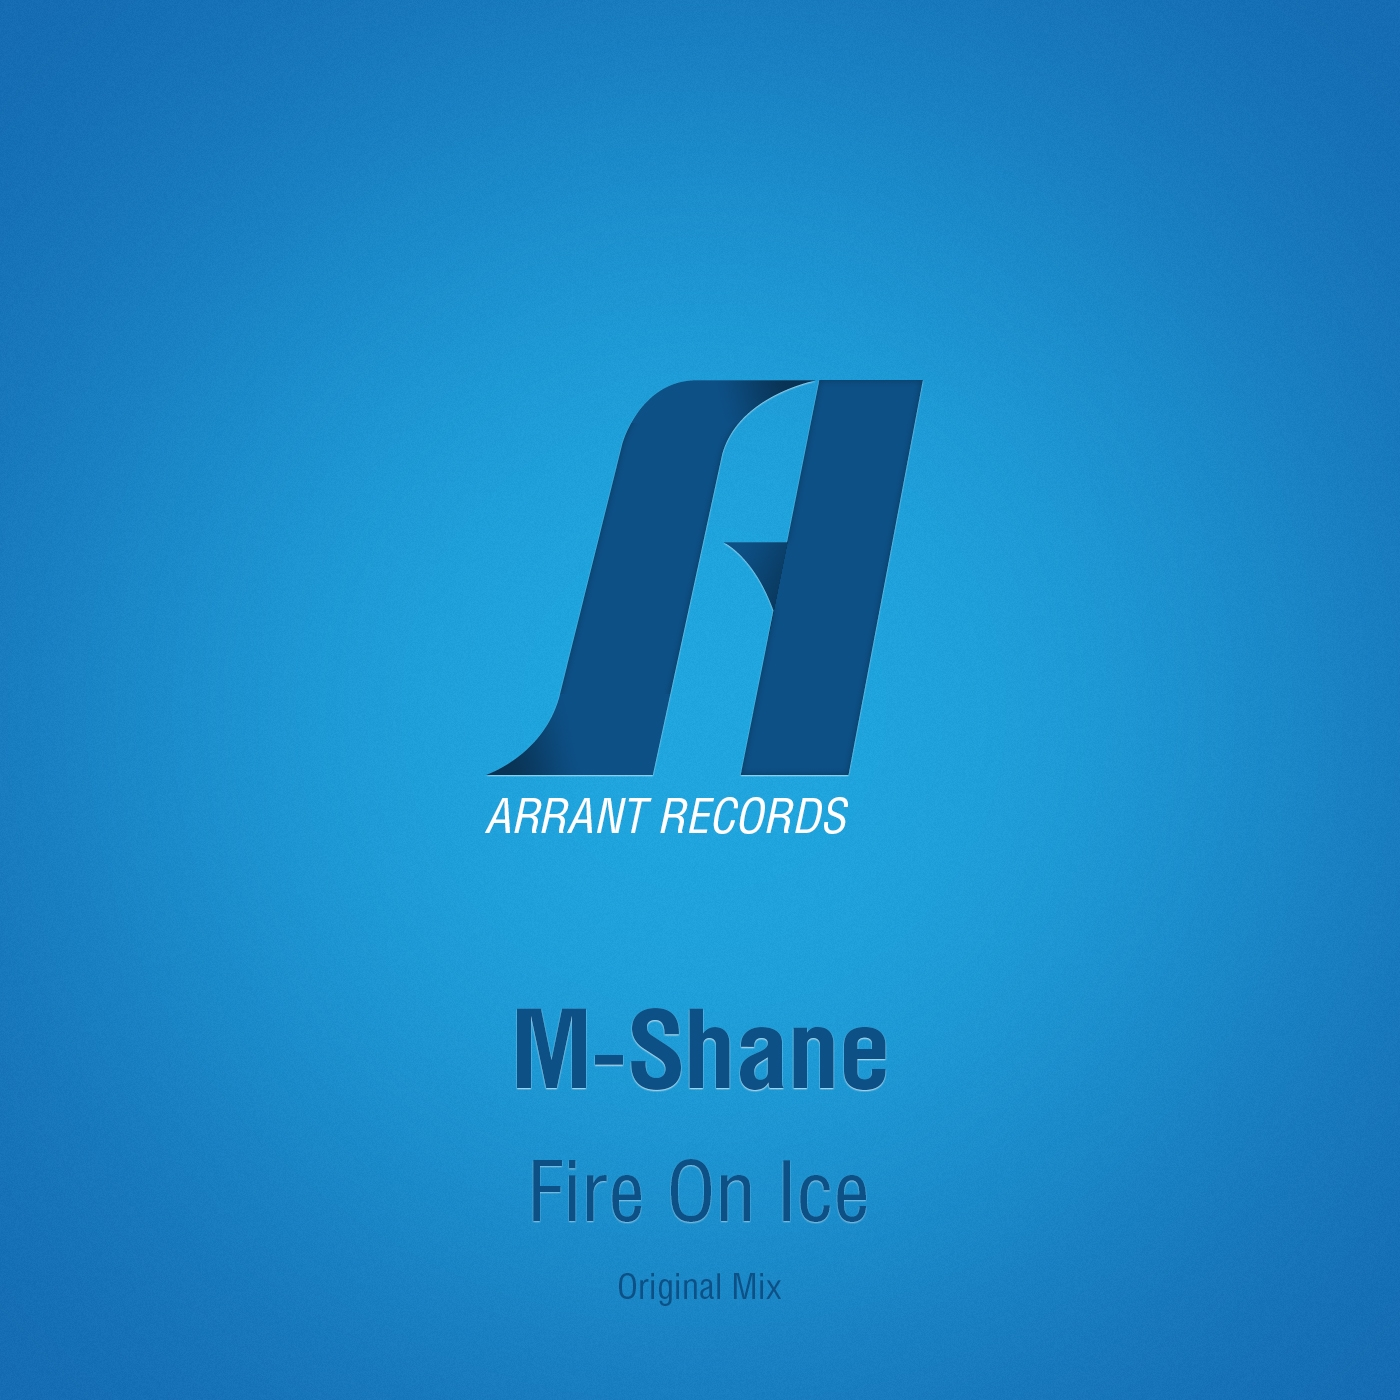 M-Shane - Fire On Ice (Original Mix)